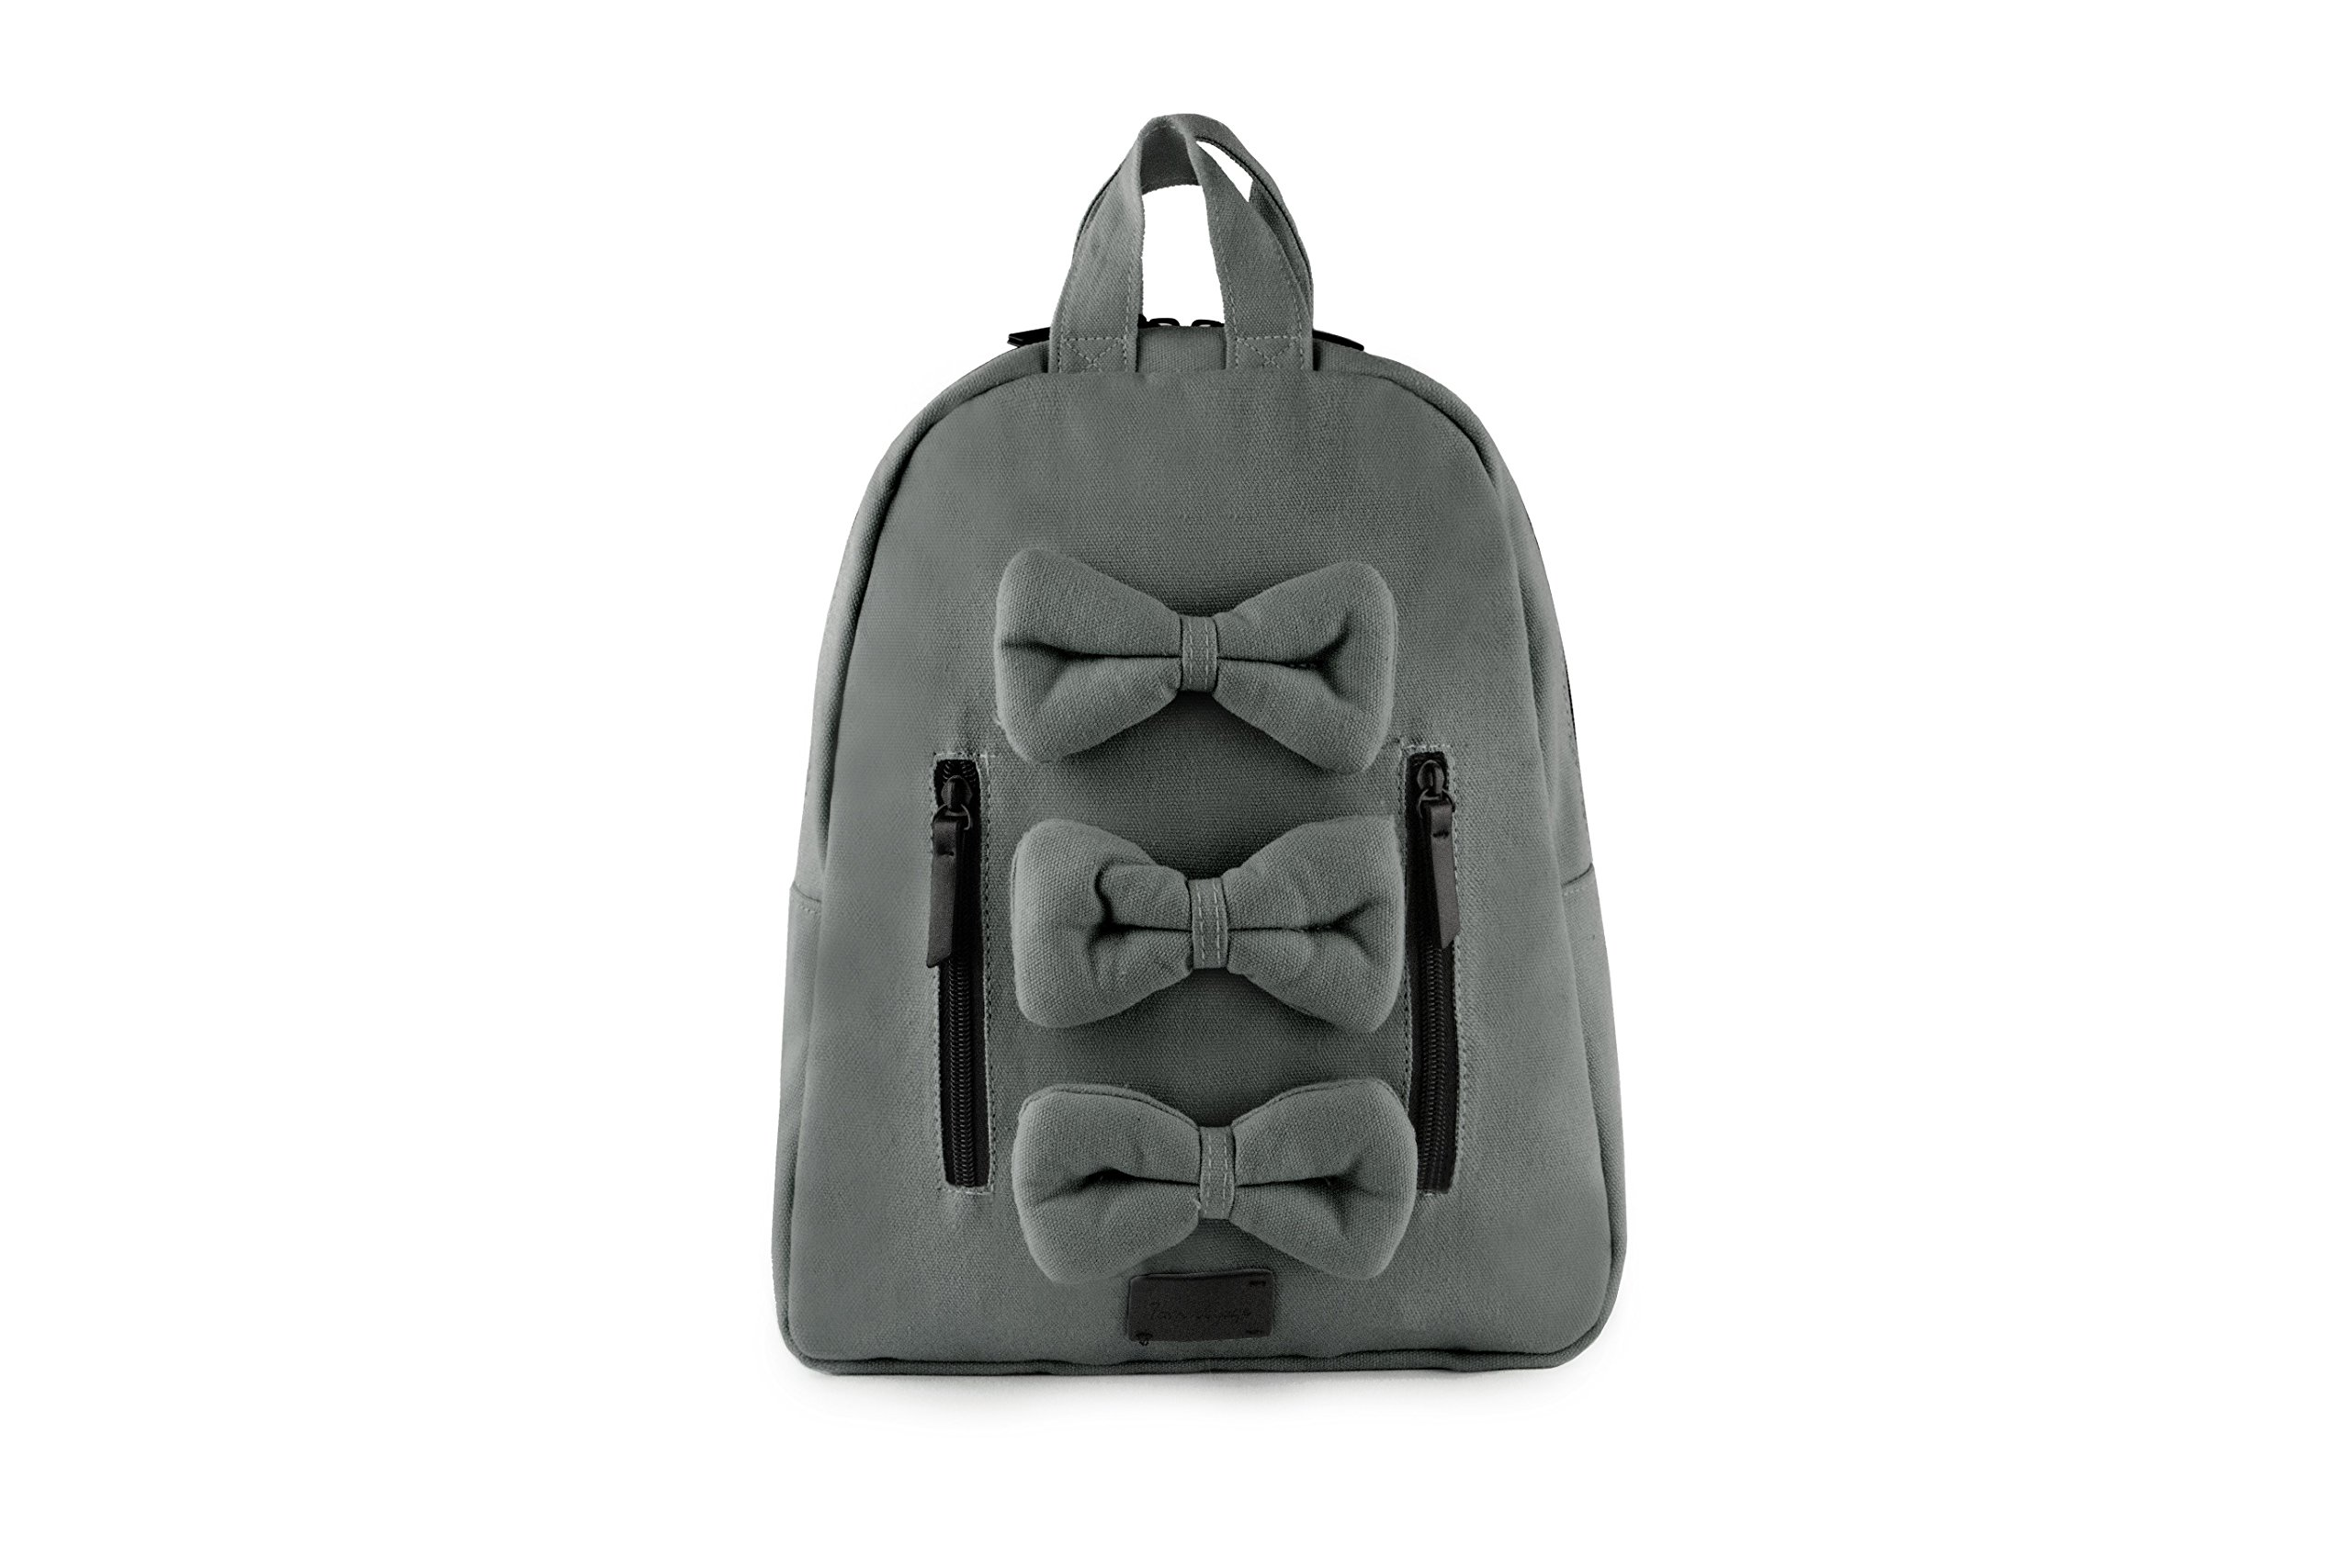 7AM Voyage Mini Bows Cotton Backpack, Toddlers, Kids and Teens School Backpack (Shadow) by 7AM Voyage (Image #1)